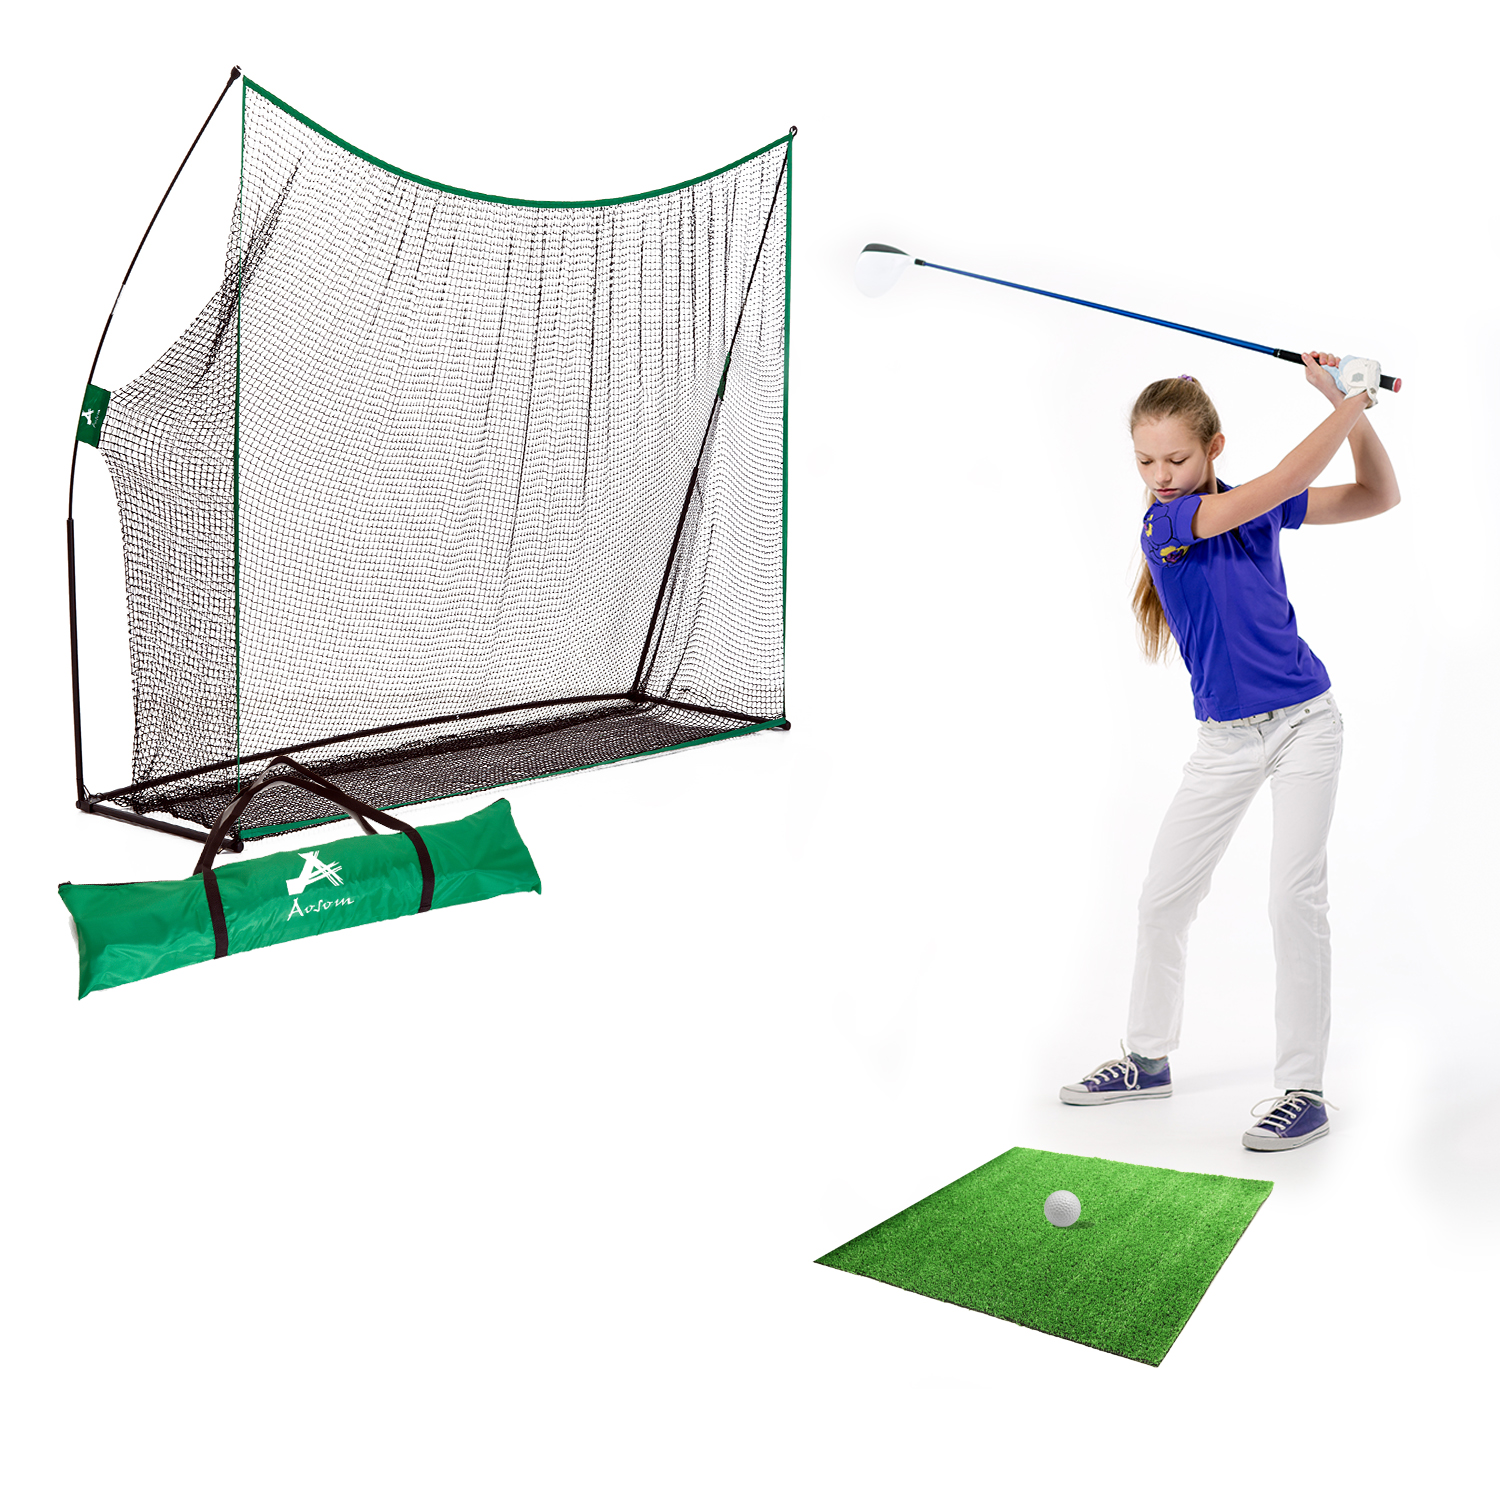 Image of CAD $102.99 Aosom 10x7ft Golf Practice Net Portable Swing Training Aid with Carry Bag / Hitting Chipping Netting Aids In/Outdoor w/ Carrying Canada 25093585852